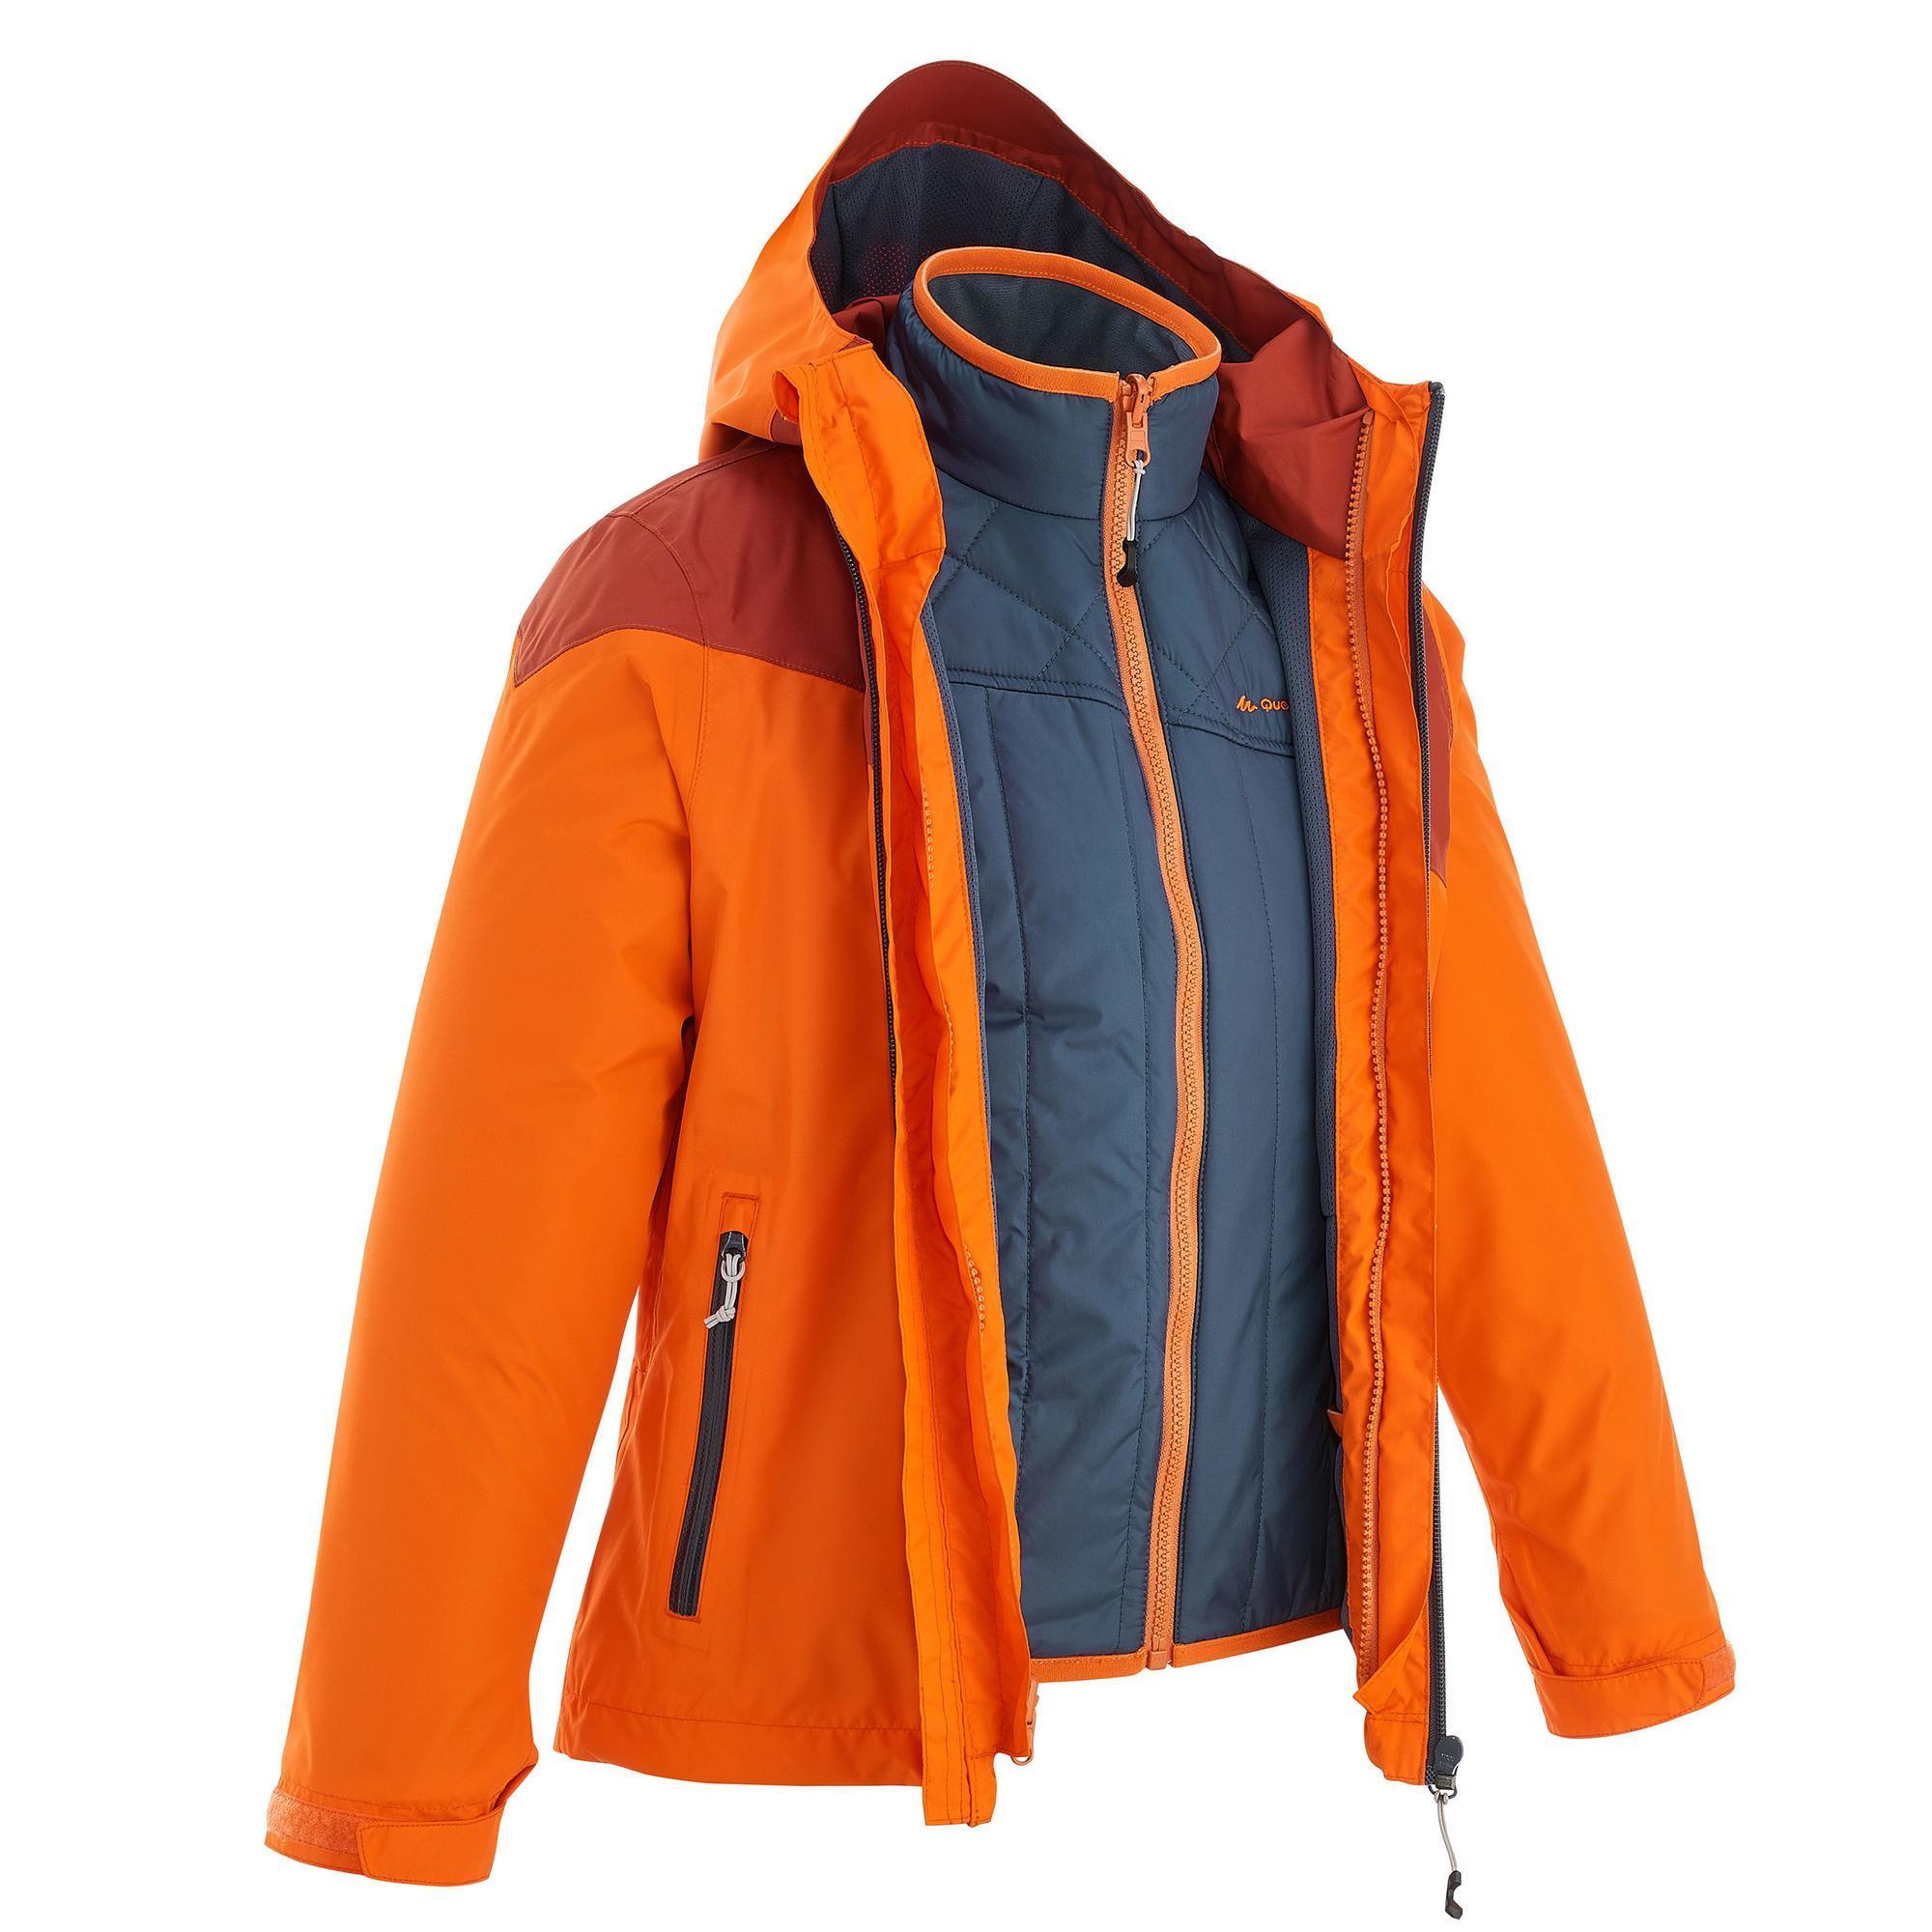 Hike 900 3 In 1 Boys Hiking Warm Waterproof Jacket